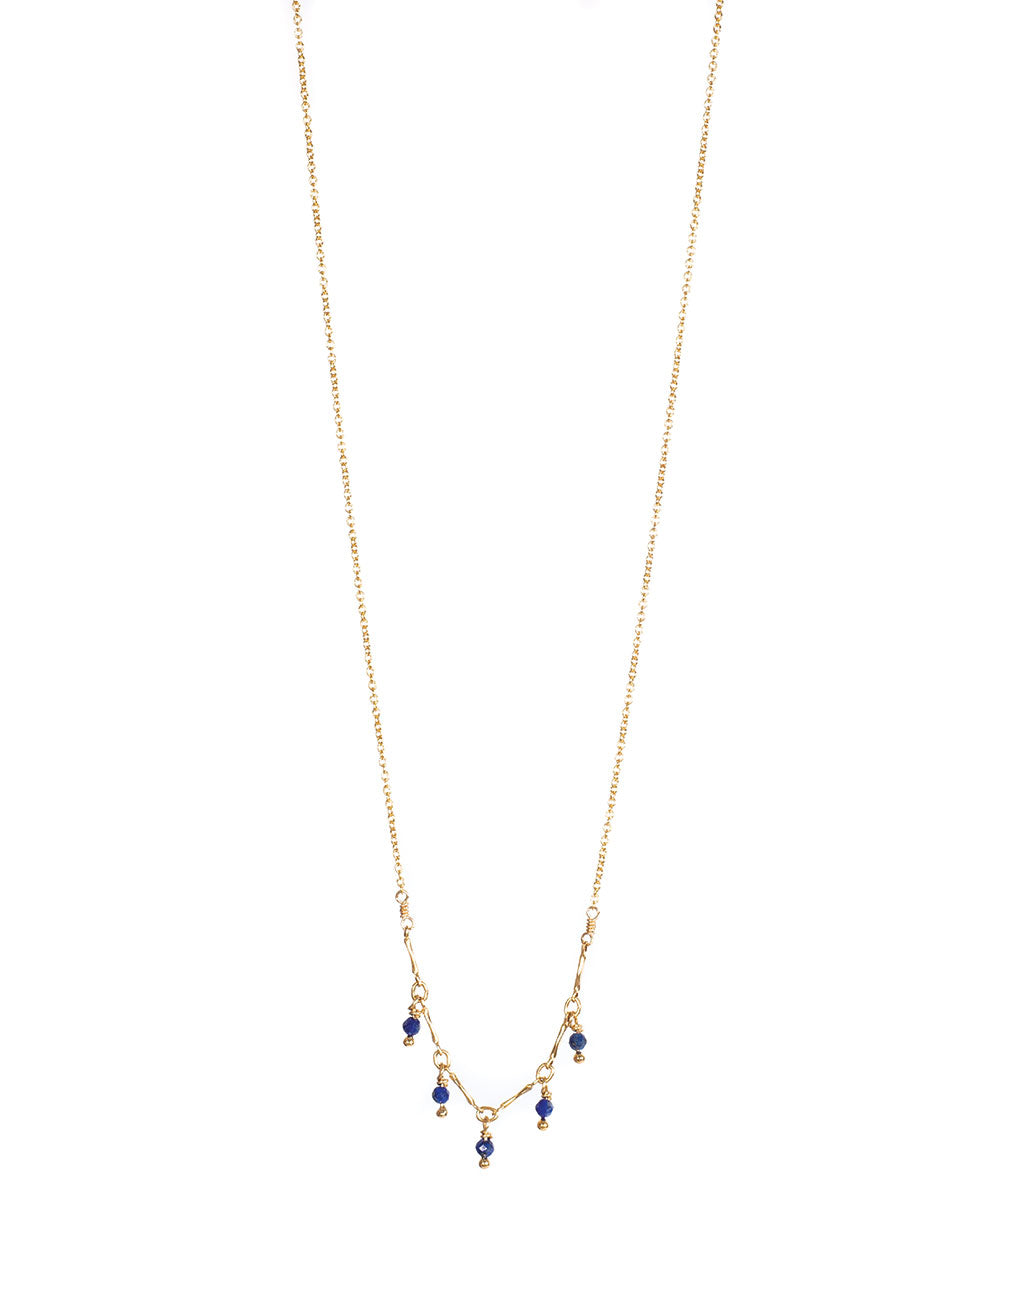 Gemstone Necklace - Midnight Blue | The Little Market